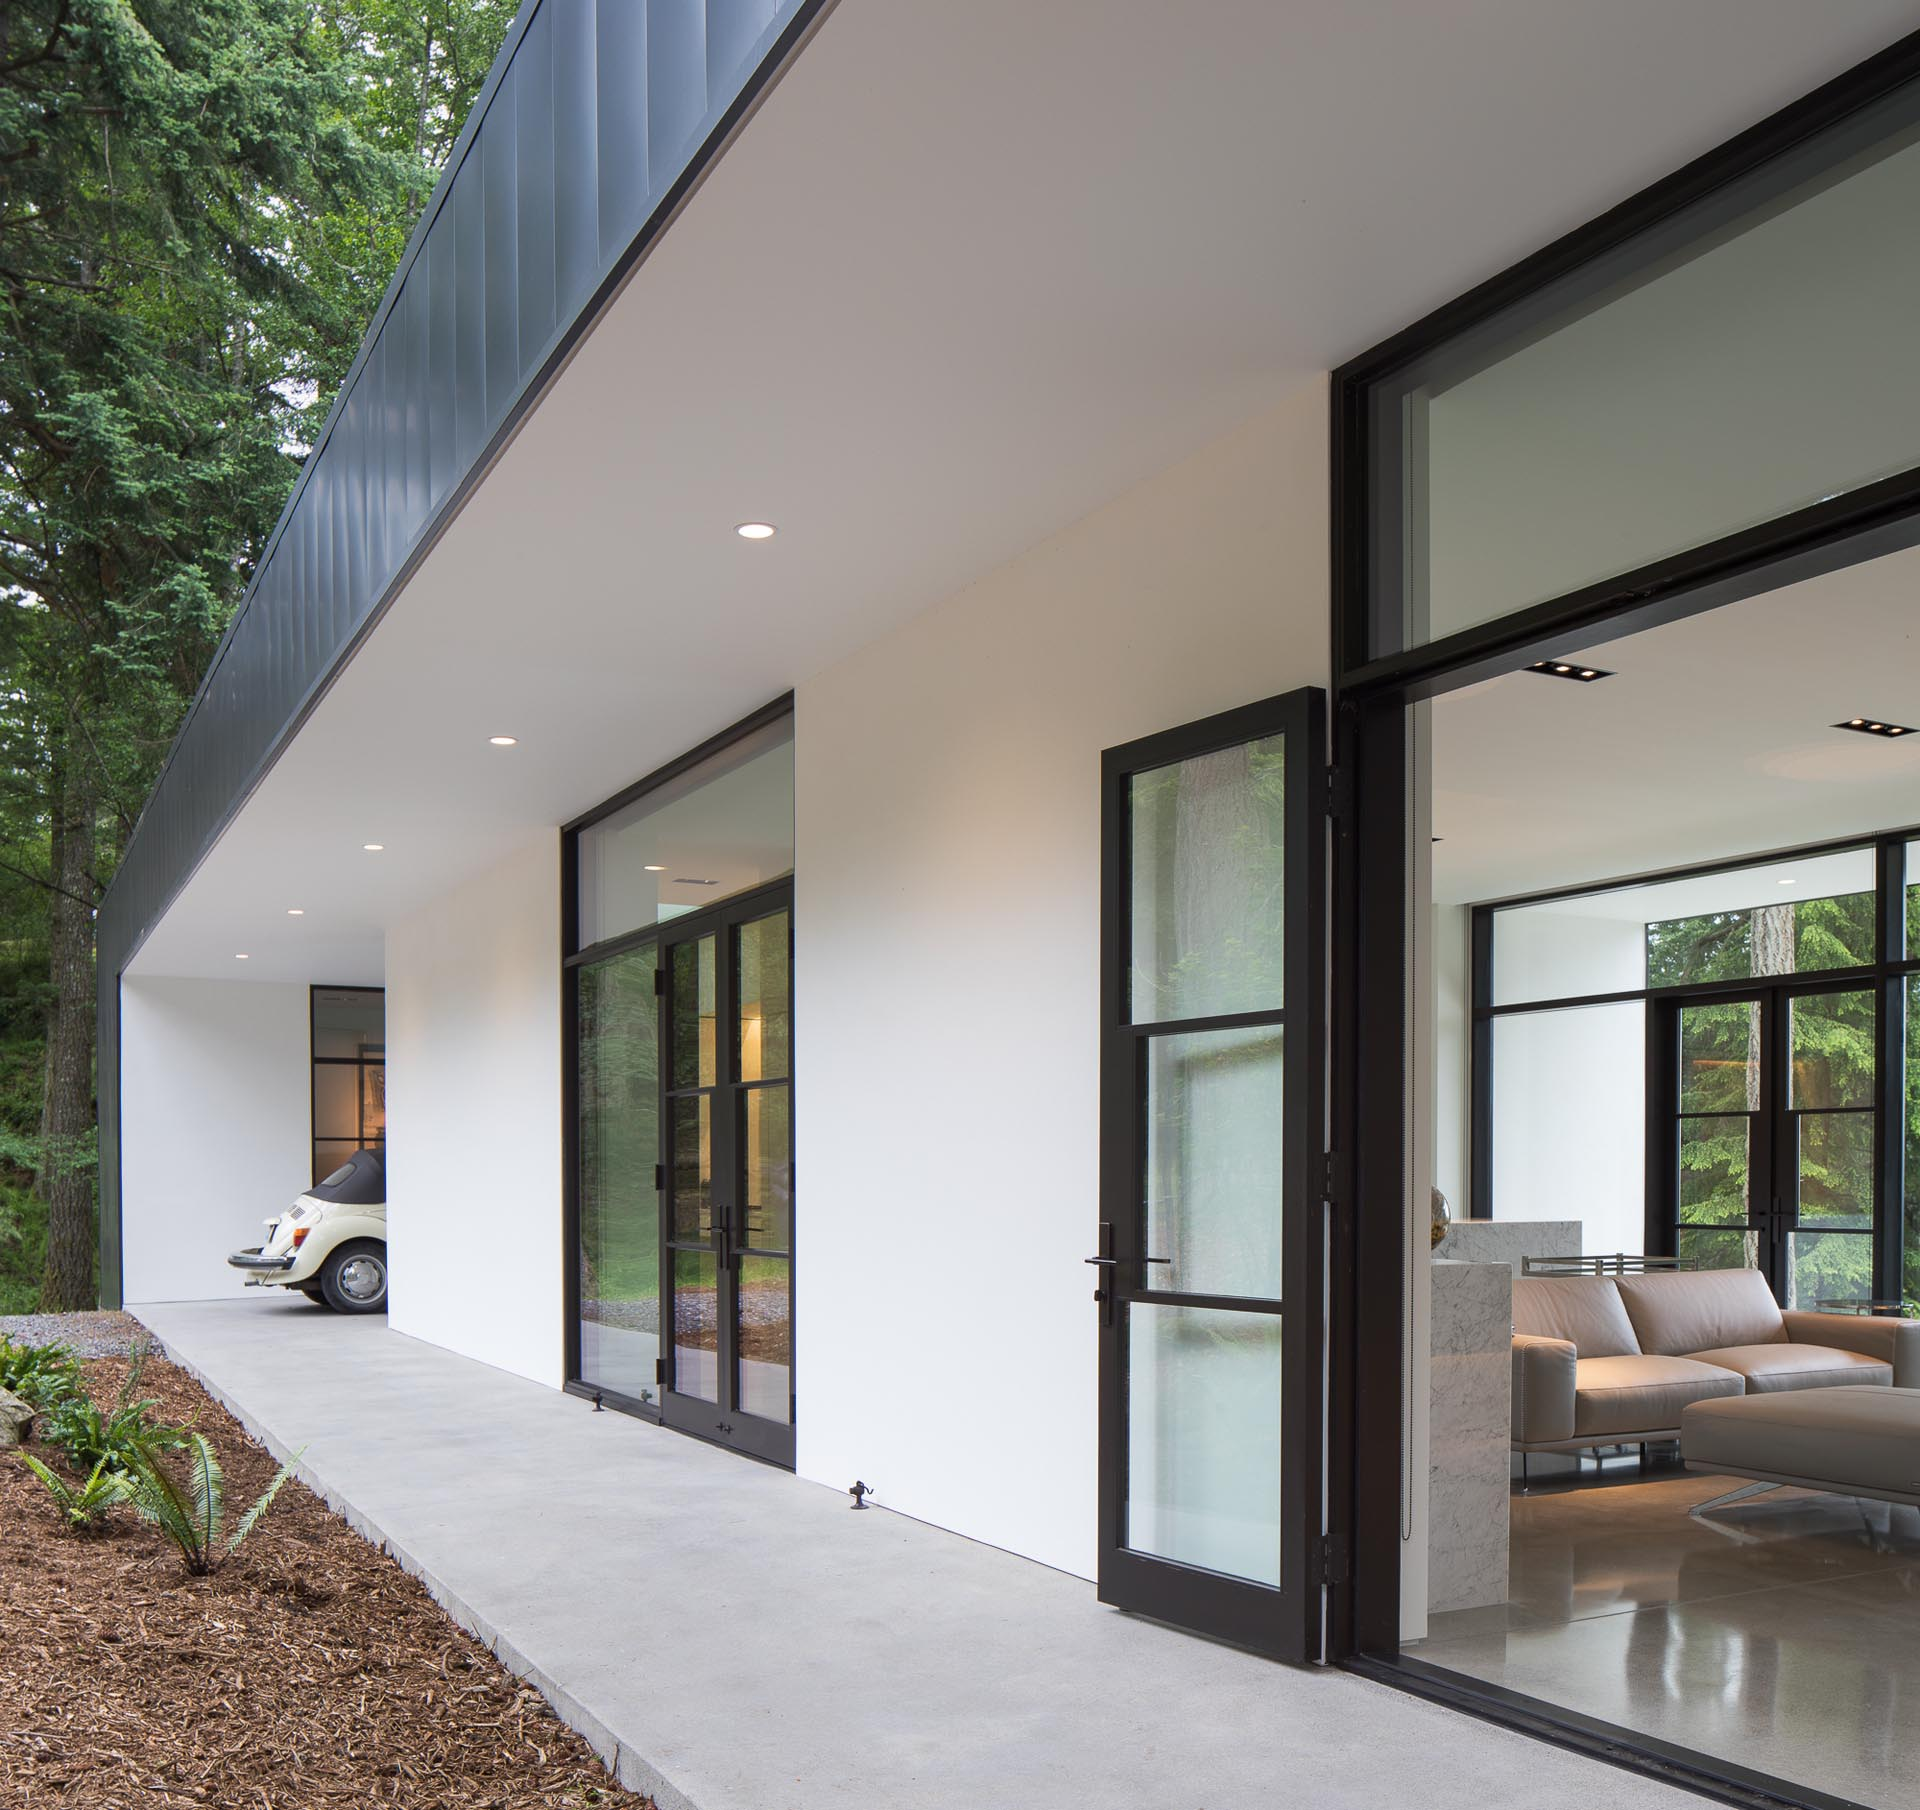 A concrete walkway leads from the carport to the entryway of the home.